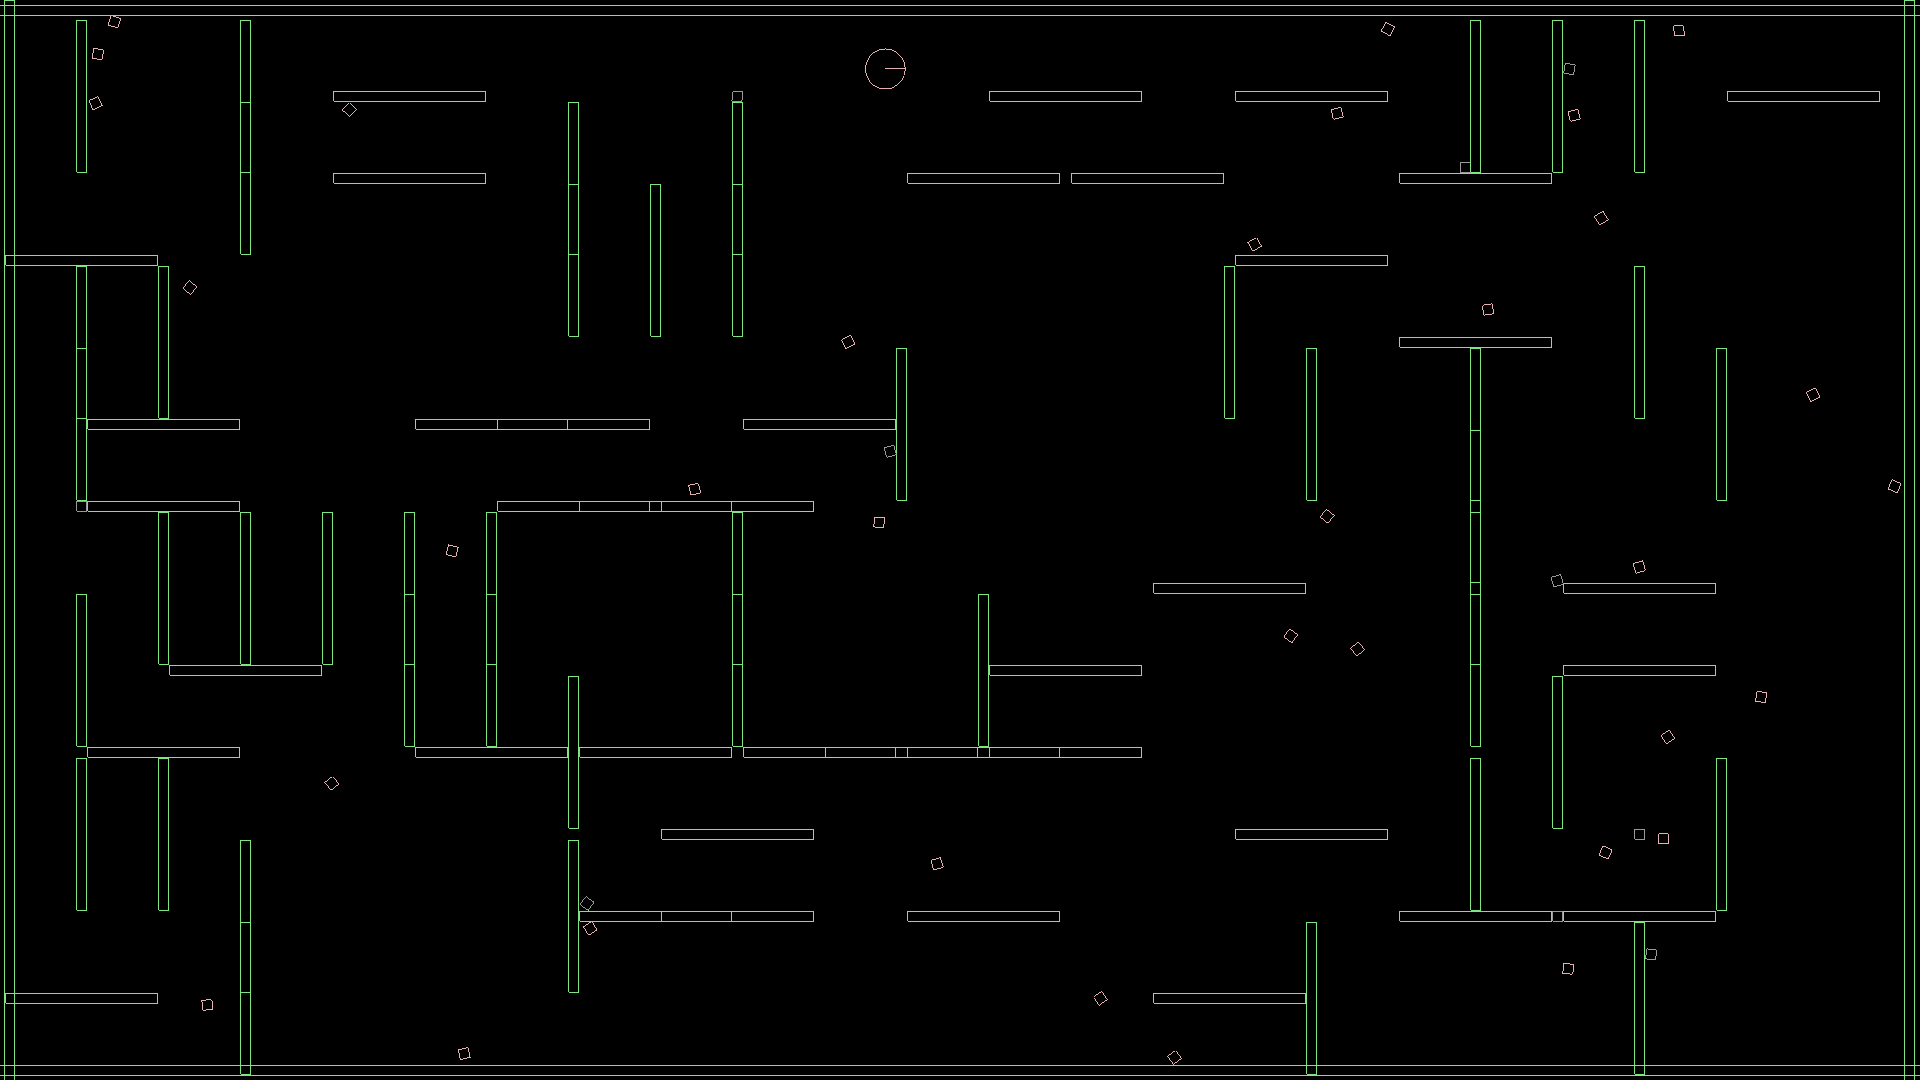 an initial attempt at creating a maze